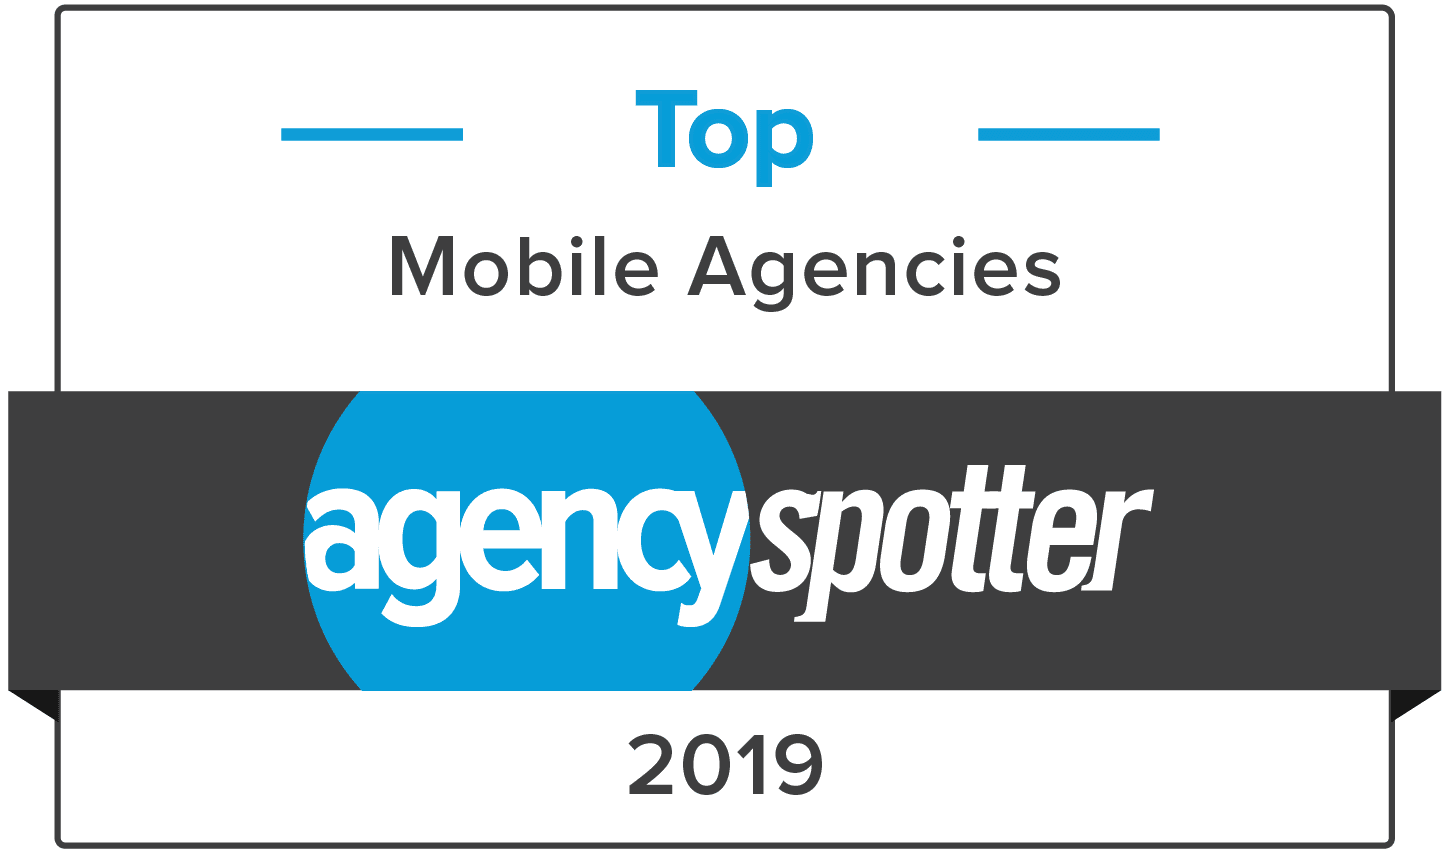 Mobile marketing agencies 2019 e435199a706ab516514f454813ea1eecc11887f87b5be5c14e6059c0960bac26